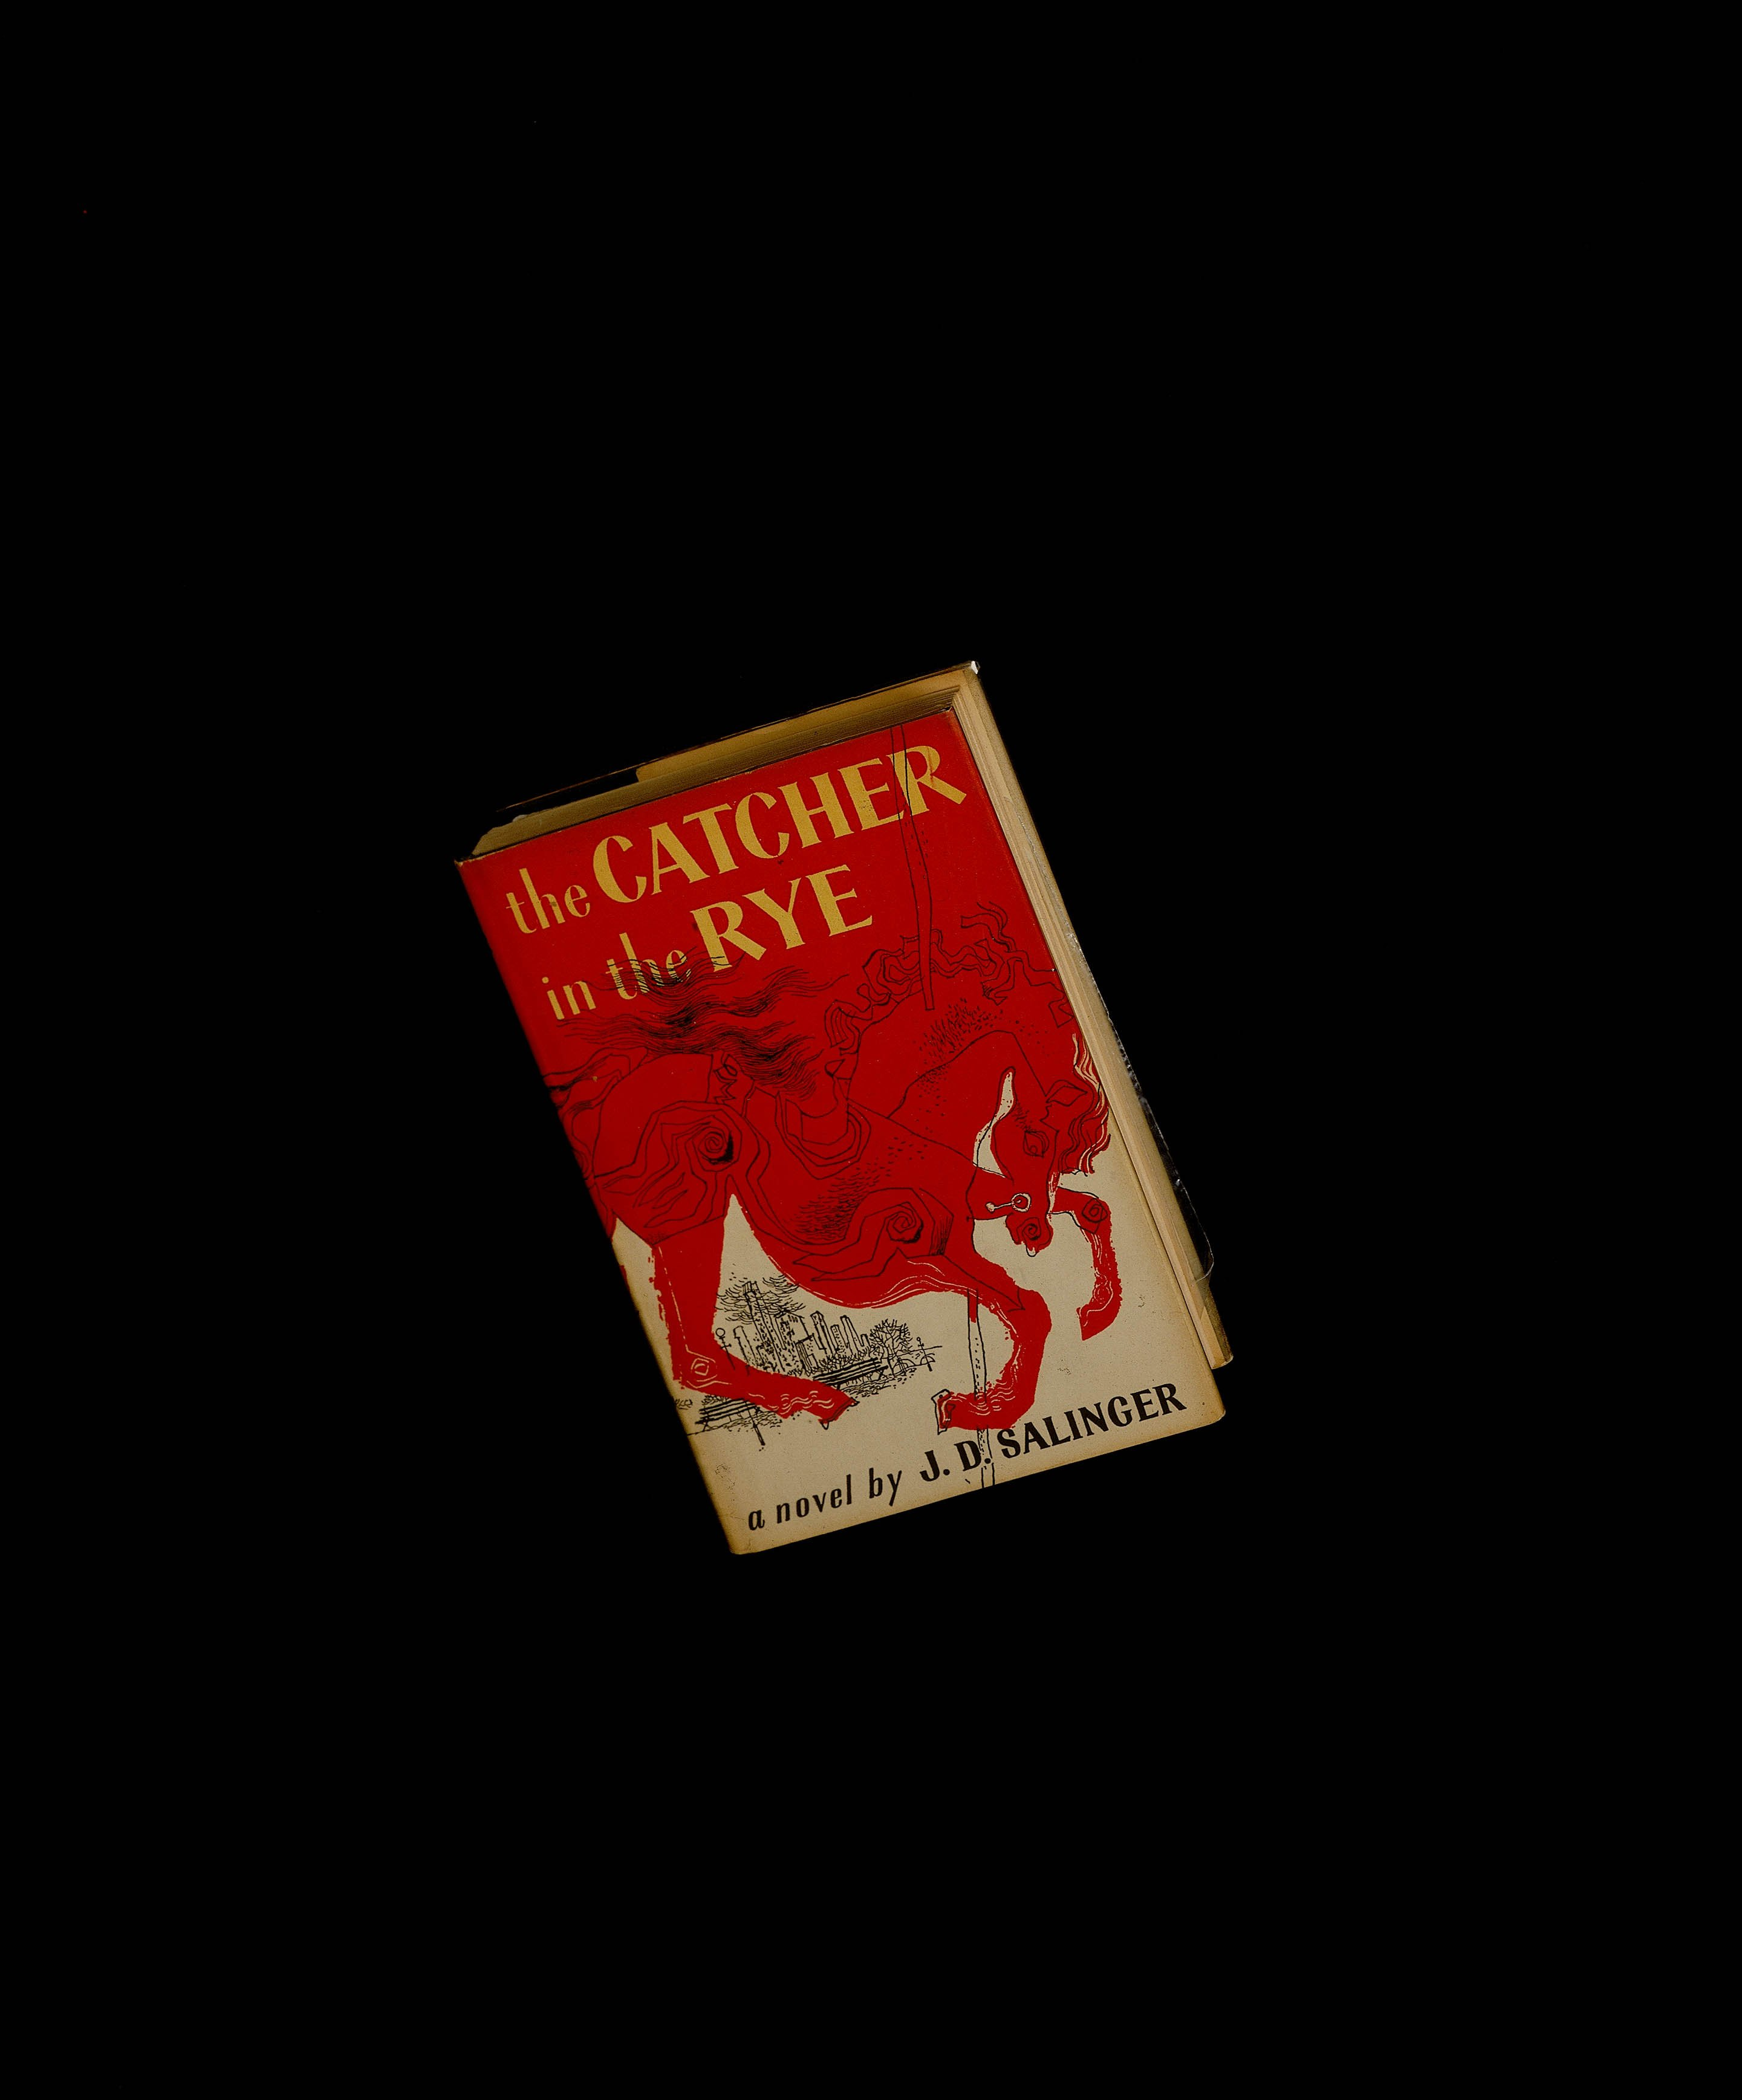 """Hardcover 1st edition of author J.D. Salinger's """"Catcher in the Rye"""" circa 1981.   Source: Getty Images"""